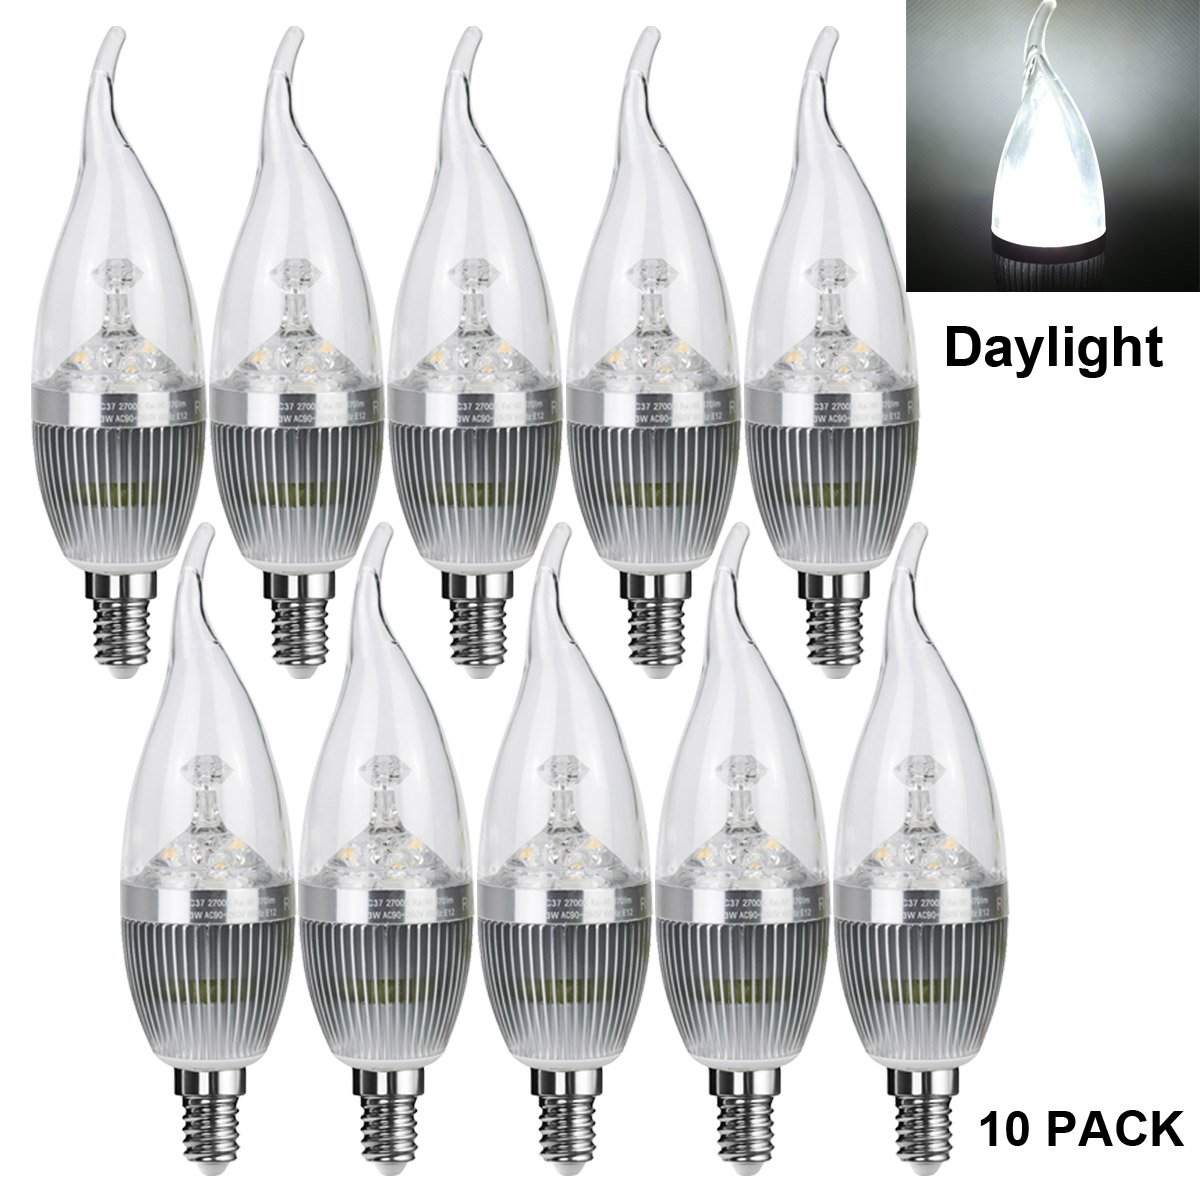 LED Candle Bulbs 25 Watt Light Bulbs Equivalent Incandescent,Non-dimmable,270 Lumens LED Lights Daylight White 5500K Baomao LED Candelabra Bulb Sliver 10 Pack,Flame Tip Chandelier Base E12 3W